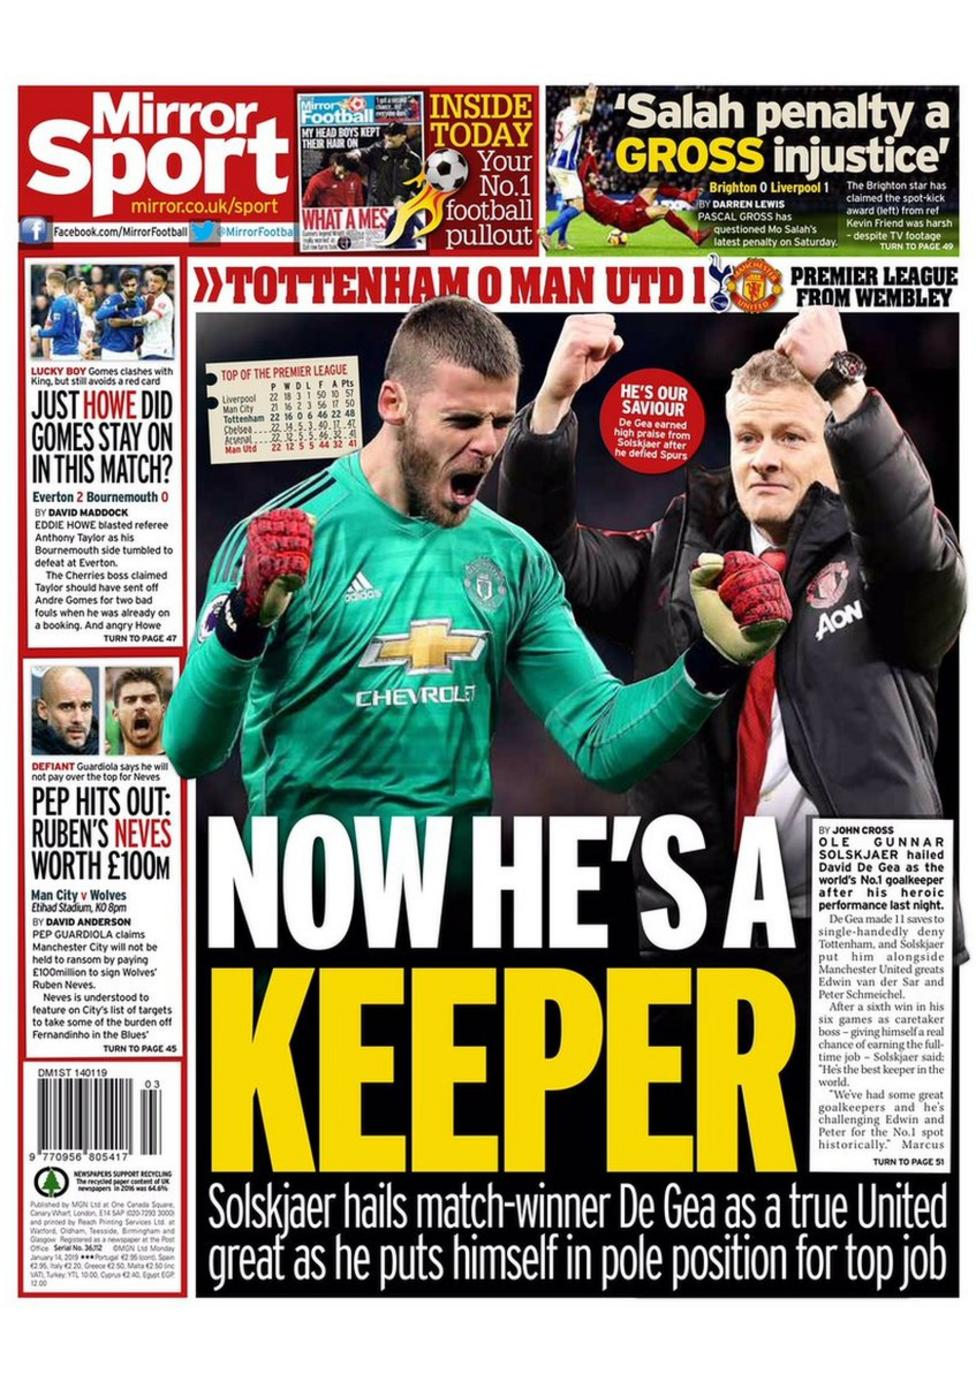 Monday's Mirror back page